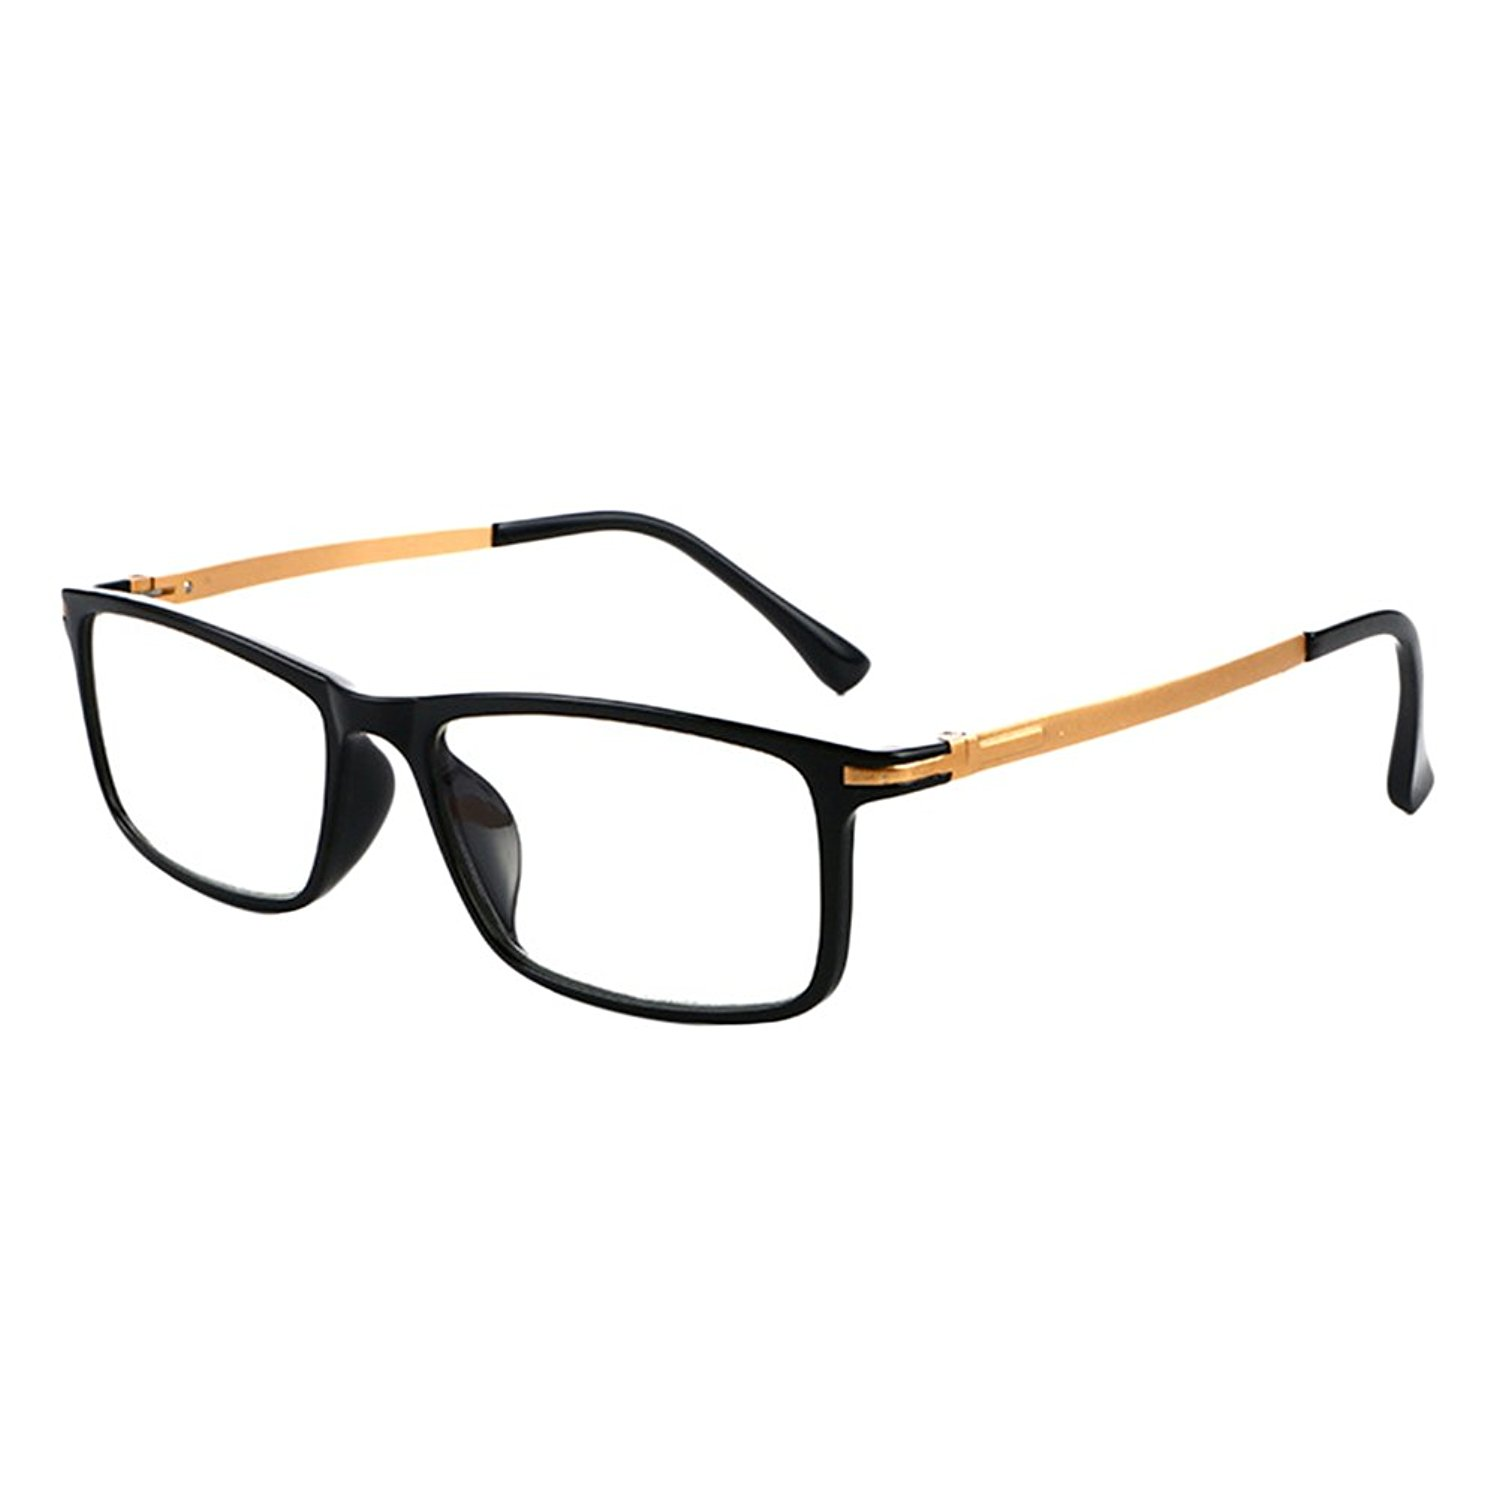 70bee3a87d0 Get Quotations · Zhhlinyuan Black Frame Eyeglasses Reading Glasses for Men  Women 1.5 2.0 3.50 4.00